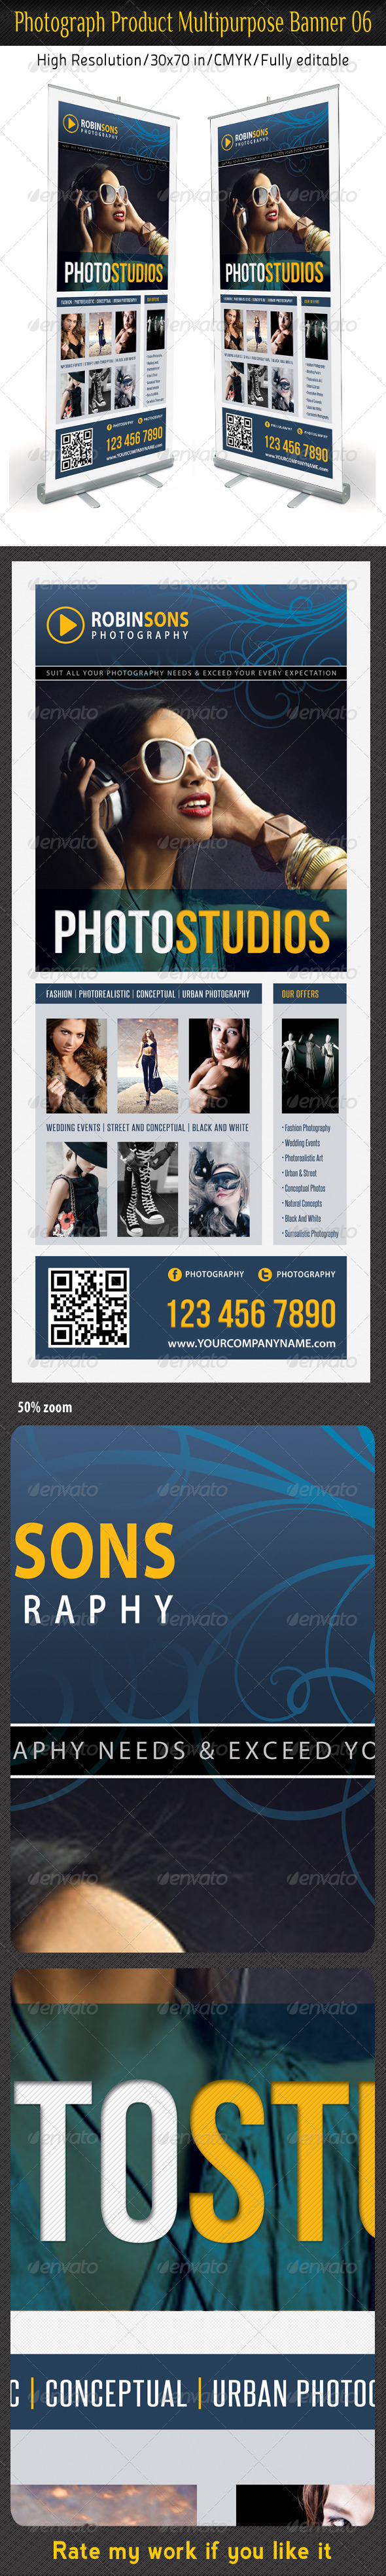 GraphicRiver Photograph Product Multipurpose Banner 06 6191411